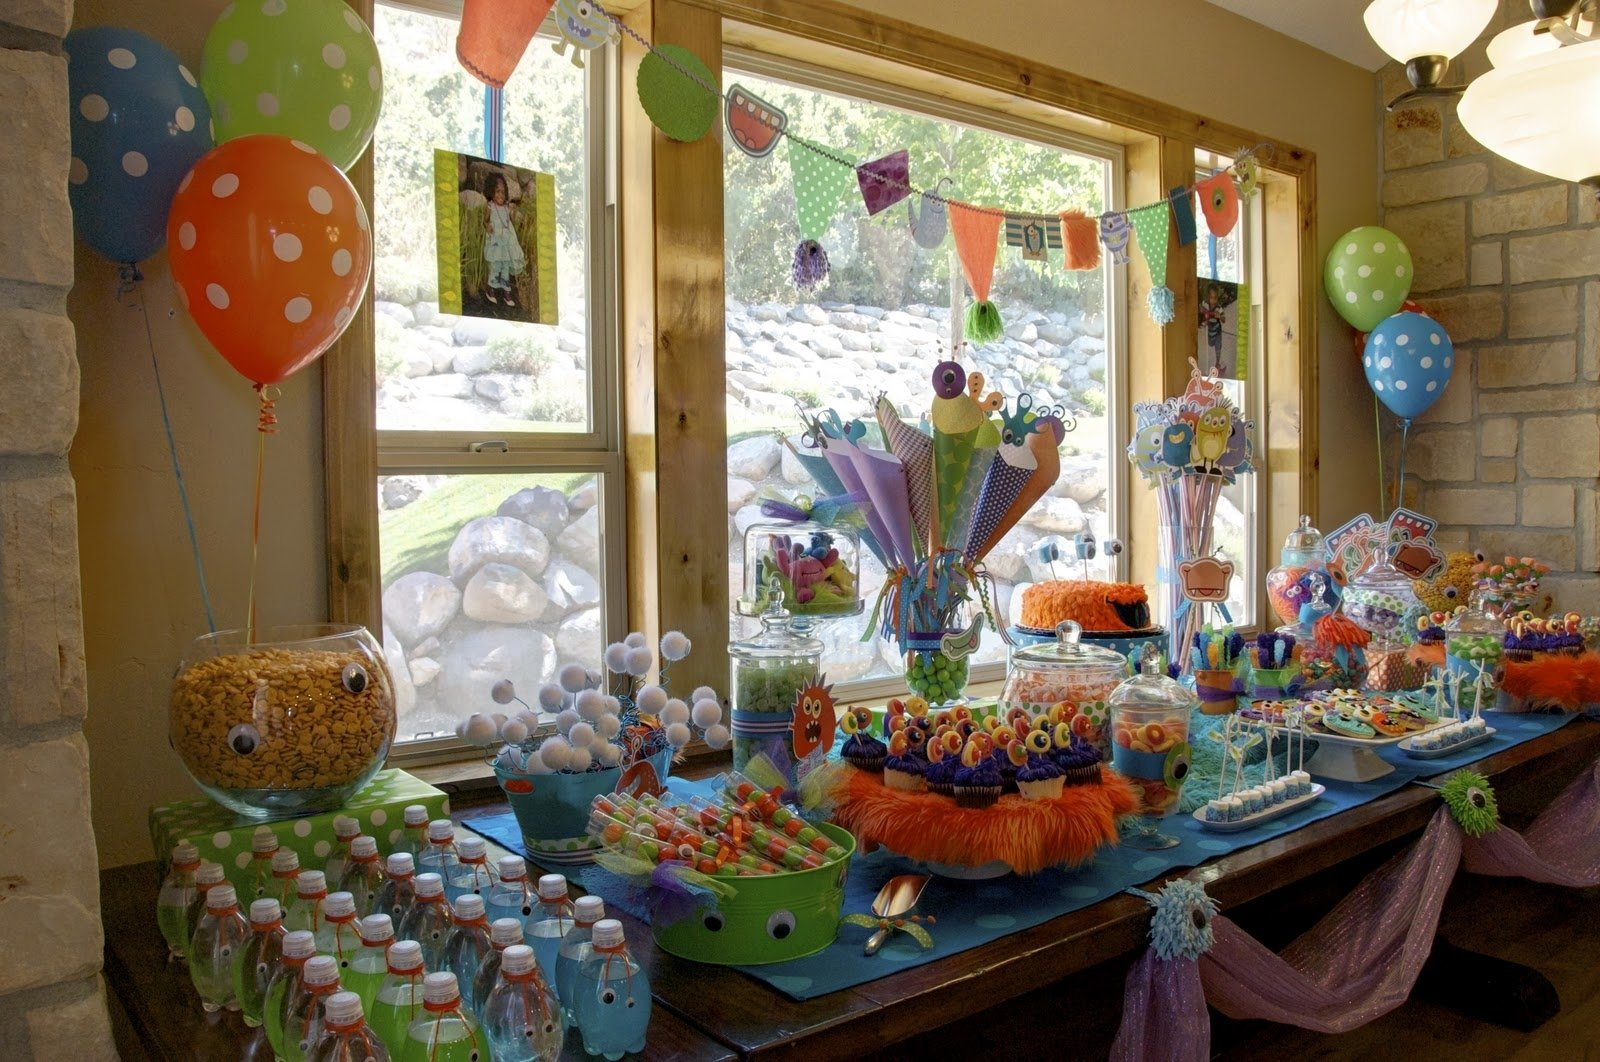 10 Cute Ideas For A 14 Year Old Birthday Party my friends birthday is in the winter and she wanteaes cause shes 19 2020